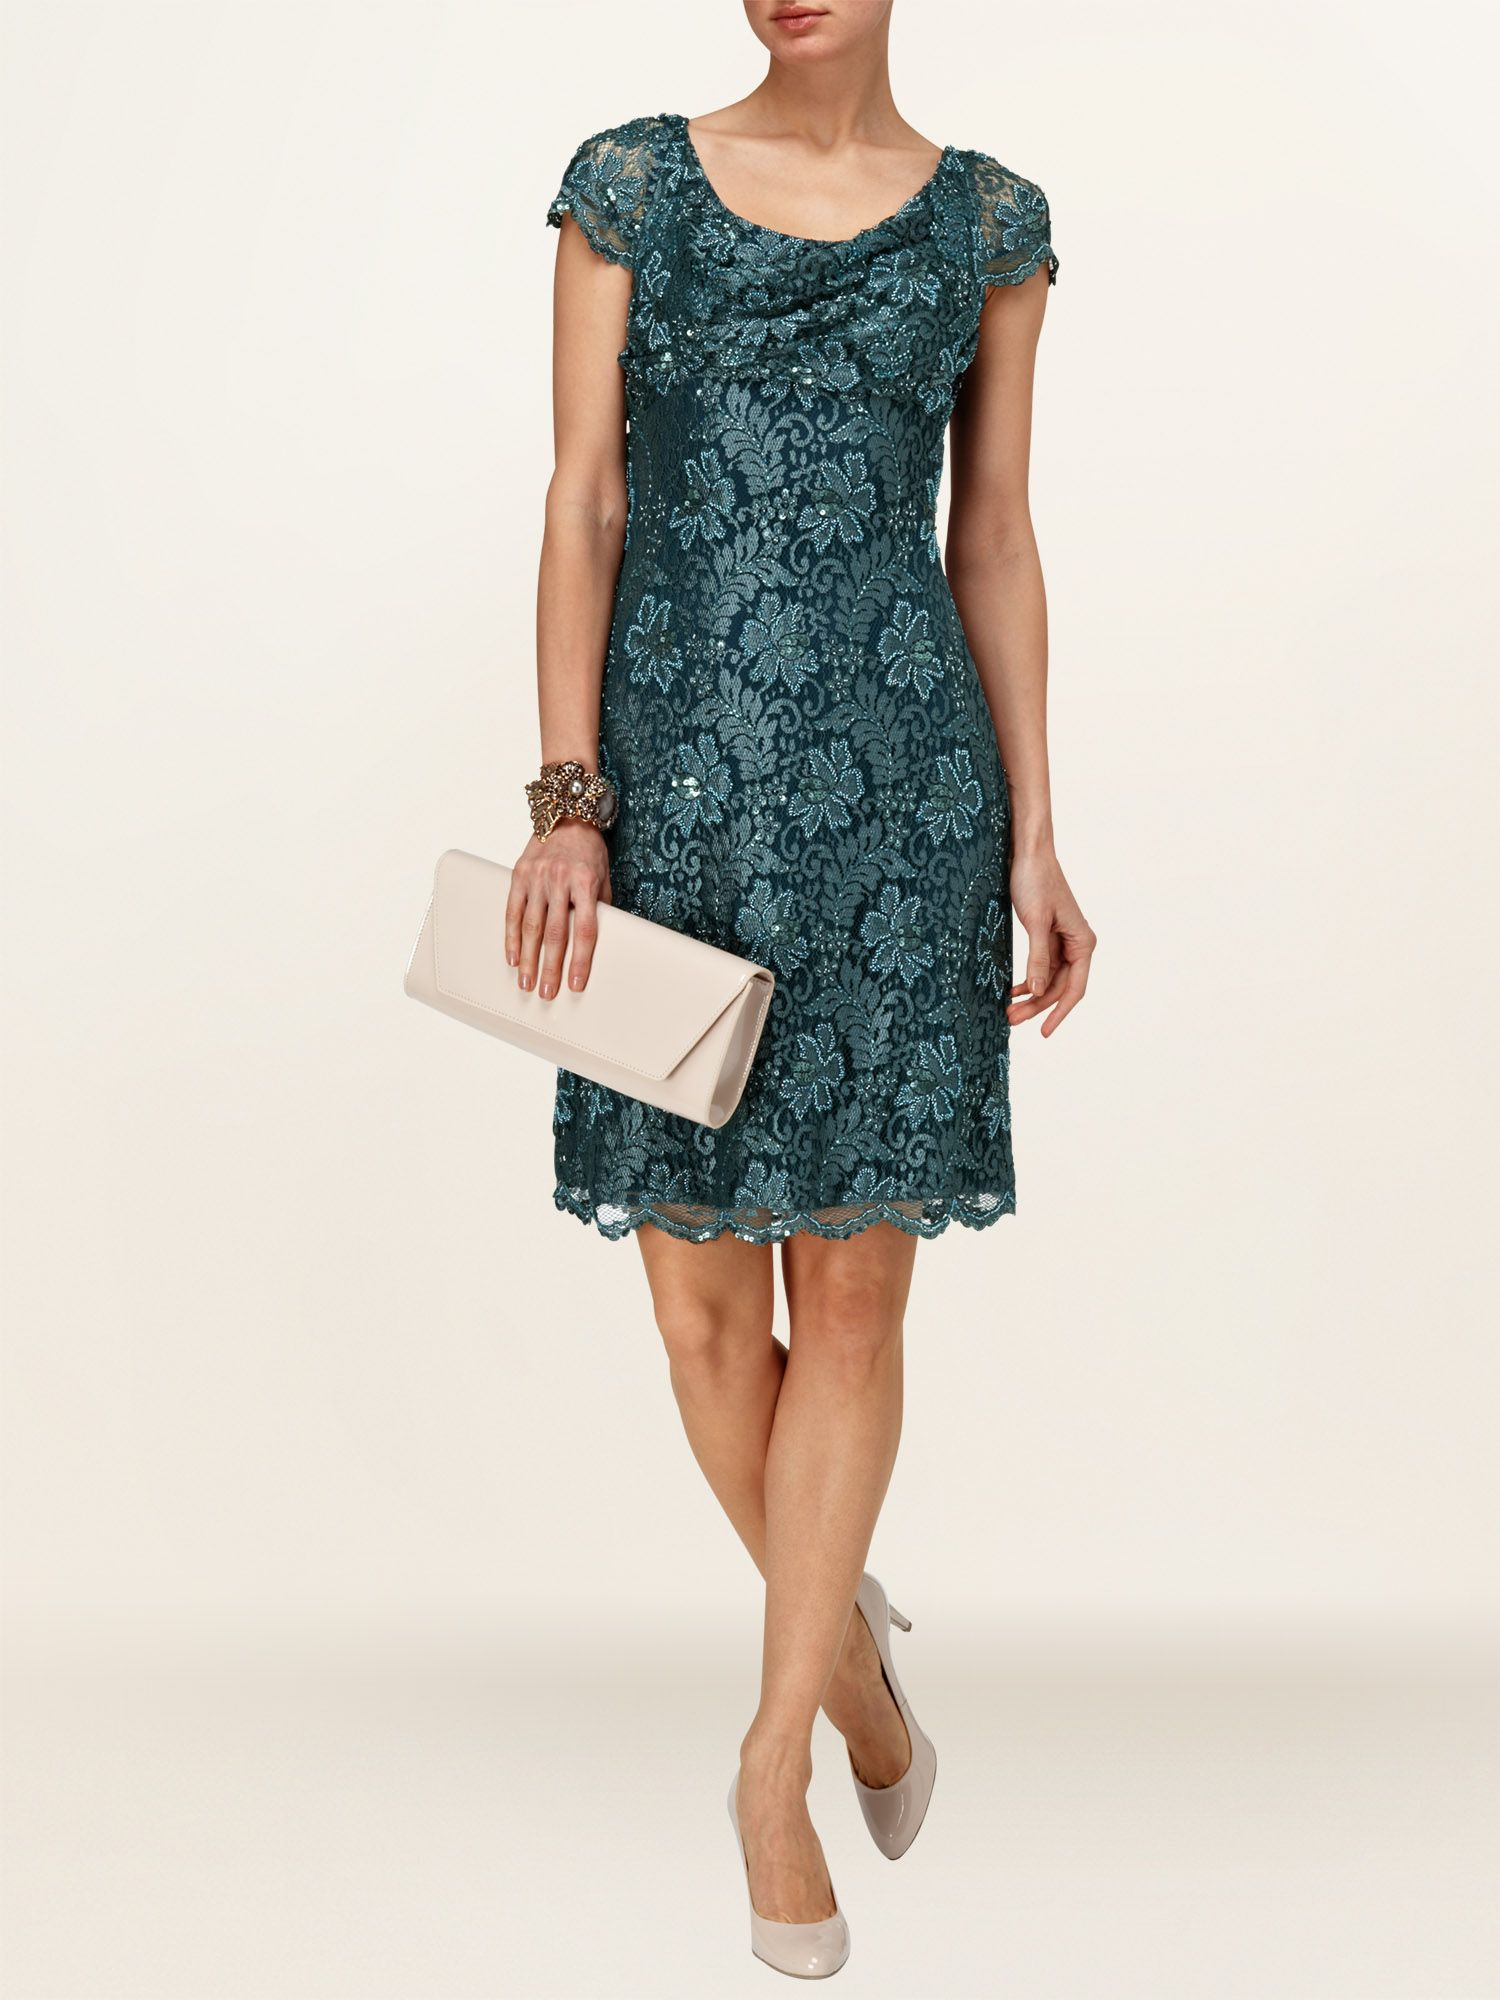 Belinda lace dress